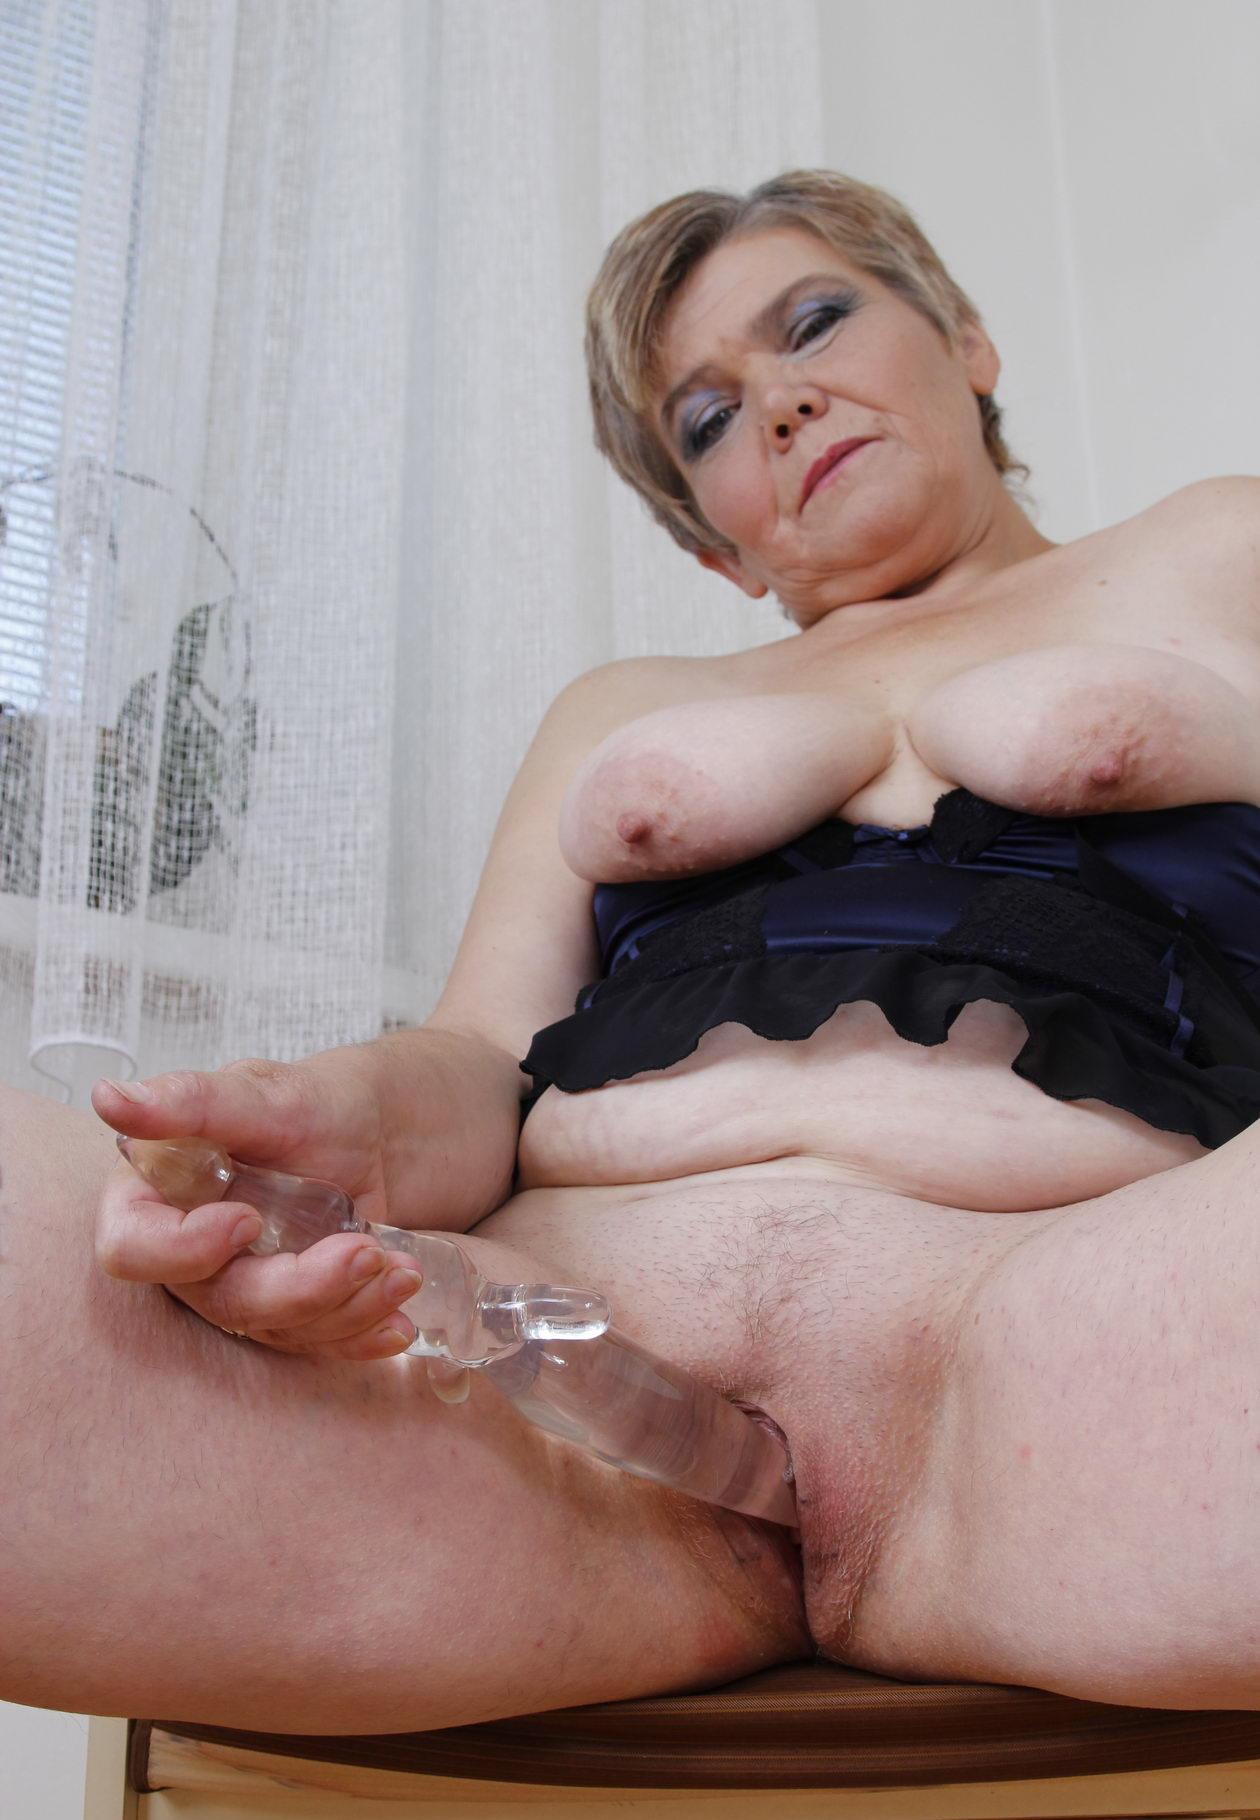 Nadia a beautyful granny is playing a glass dildo